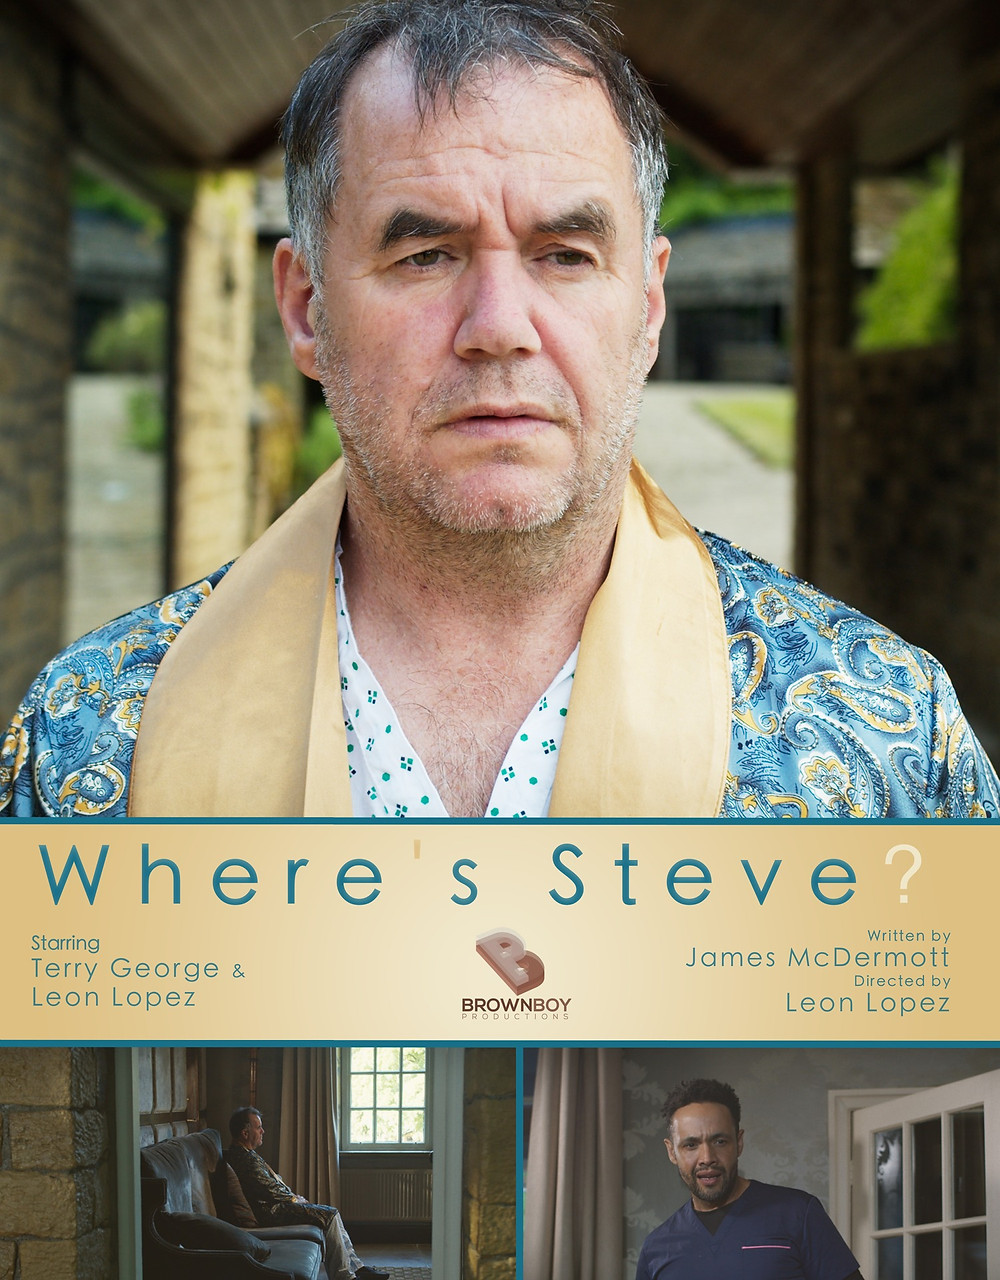 Film poster for Where's Steve? showing a confused and lonely older man, glancing off into the distance in longing for his partner's return.